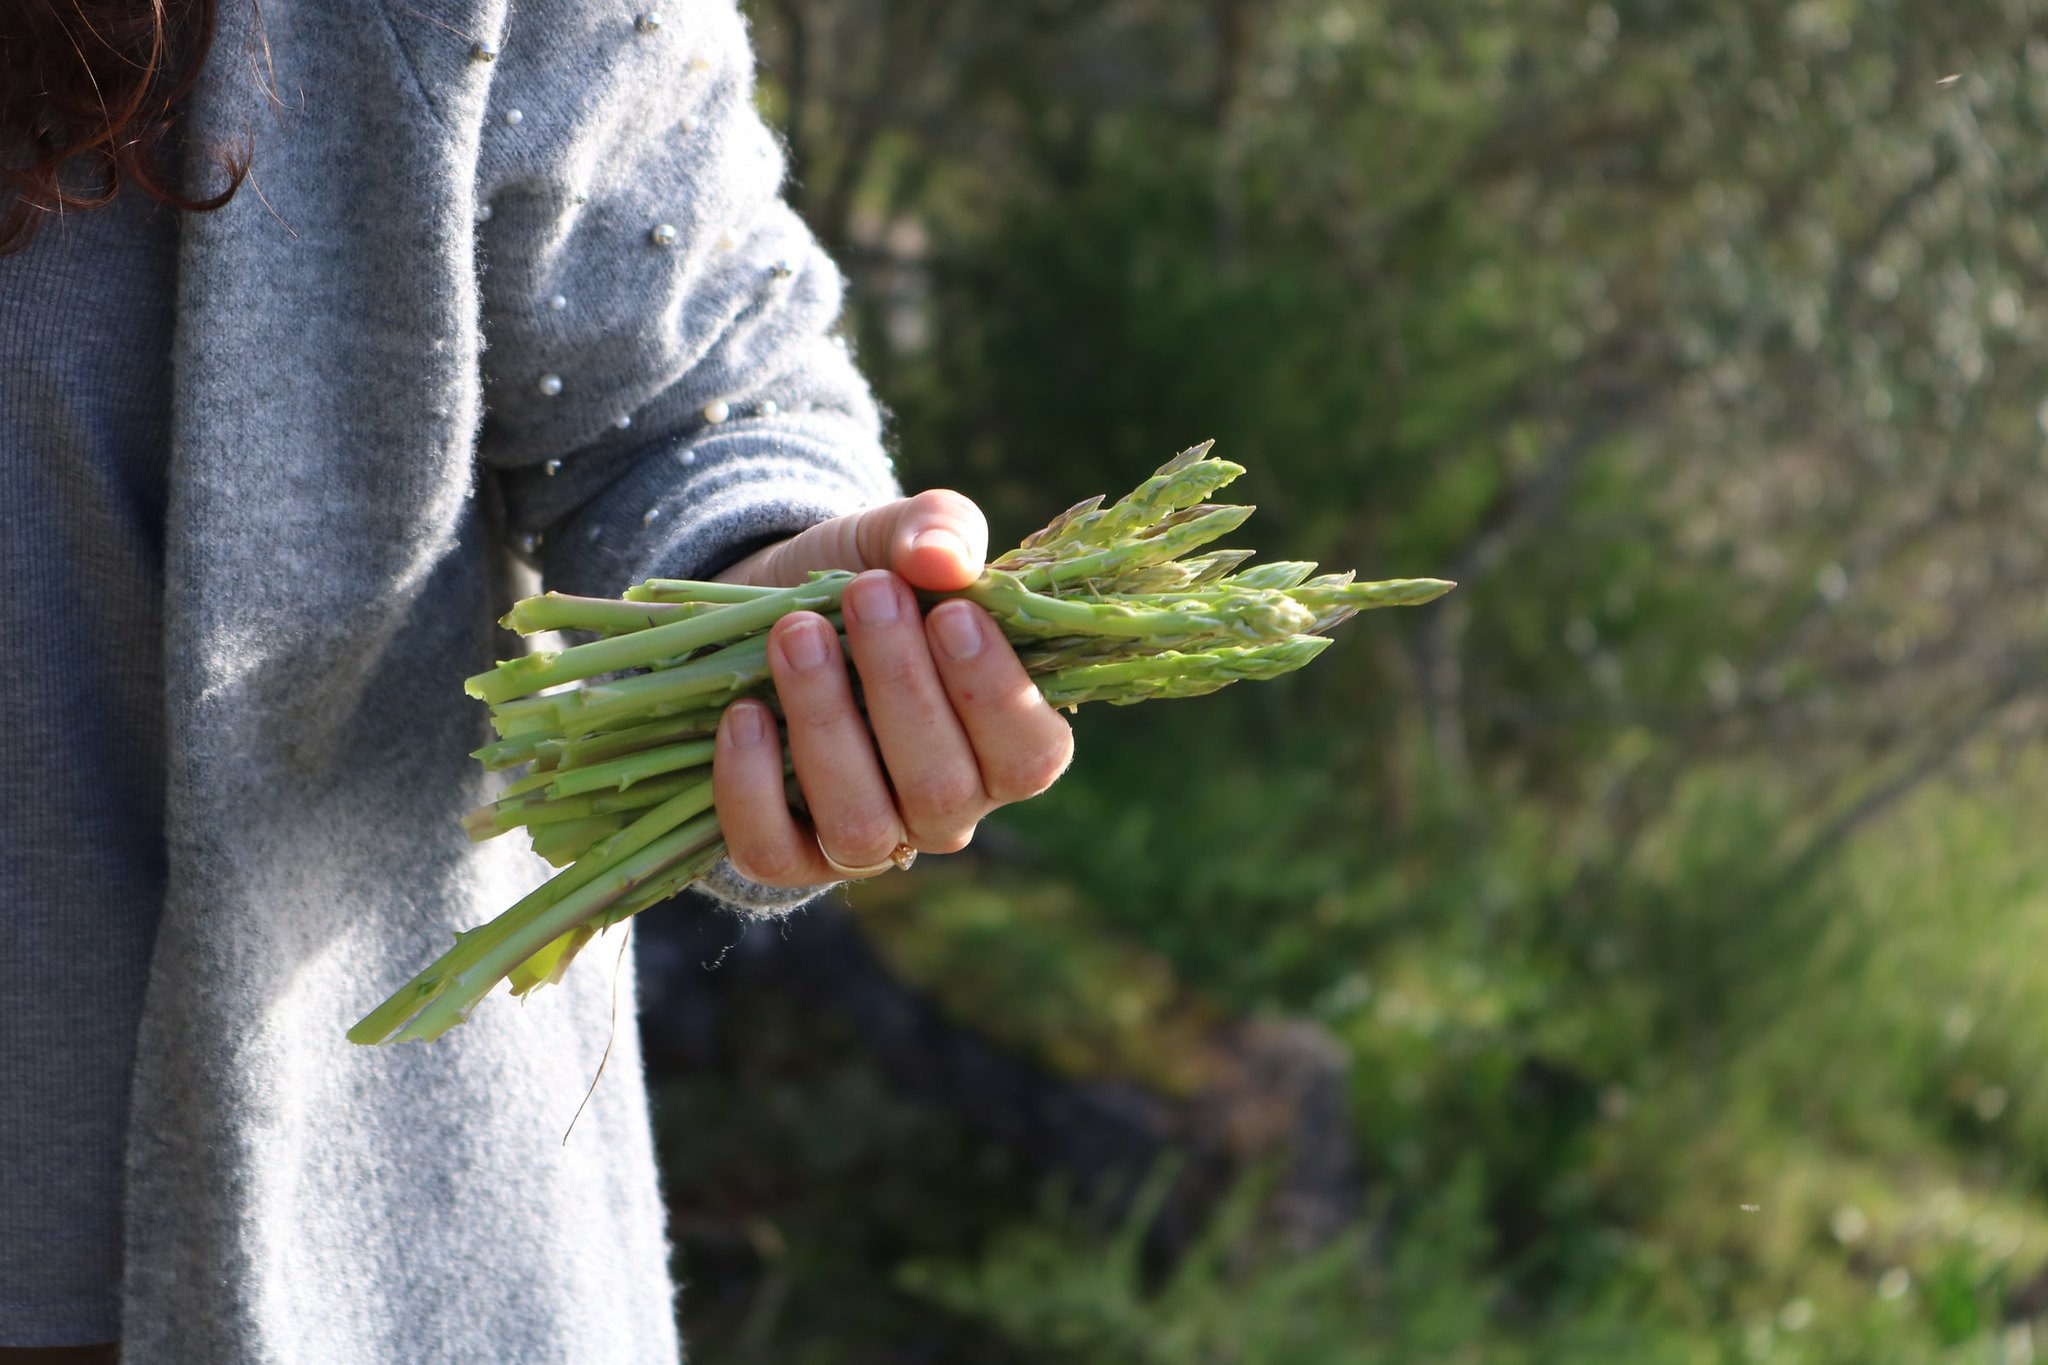 With the right care, asparagus beds will last decades